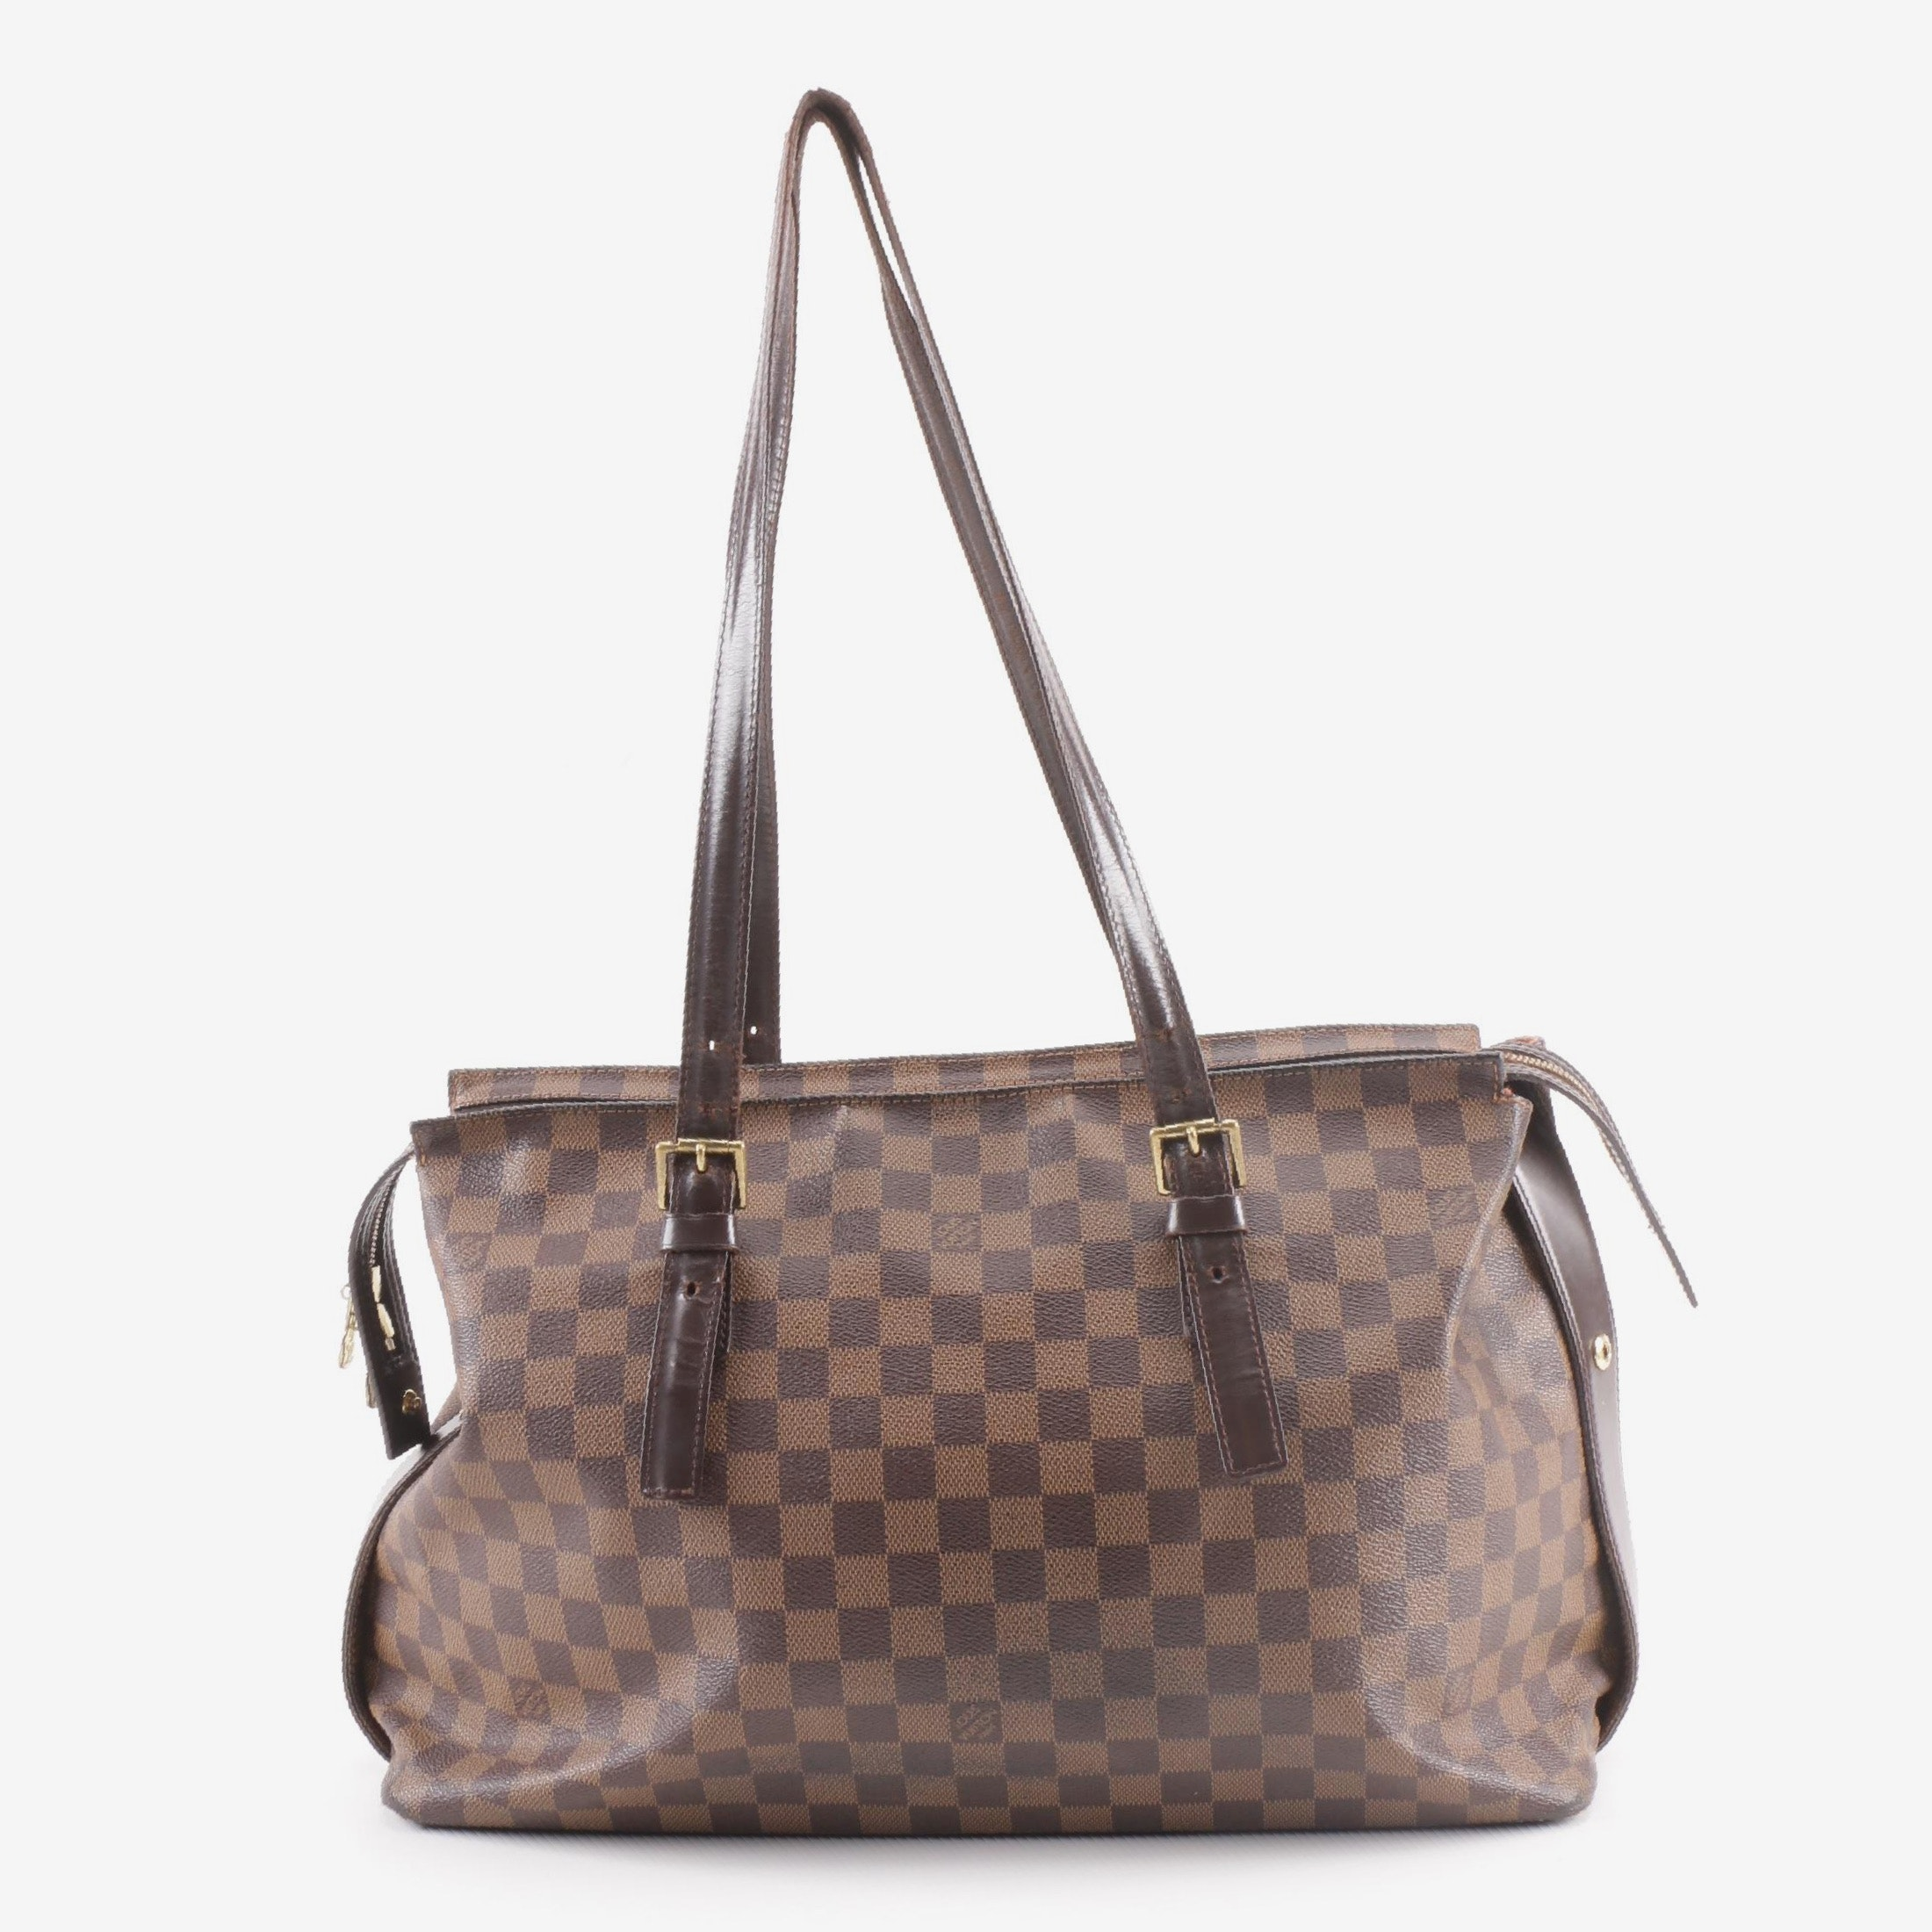 2012 Louis Vuitton Paris Damier Ebene Canvas Chelsea Tote